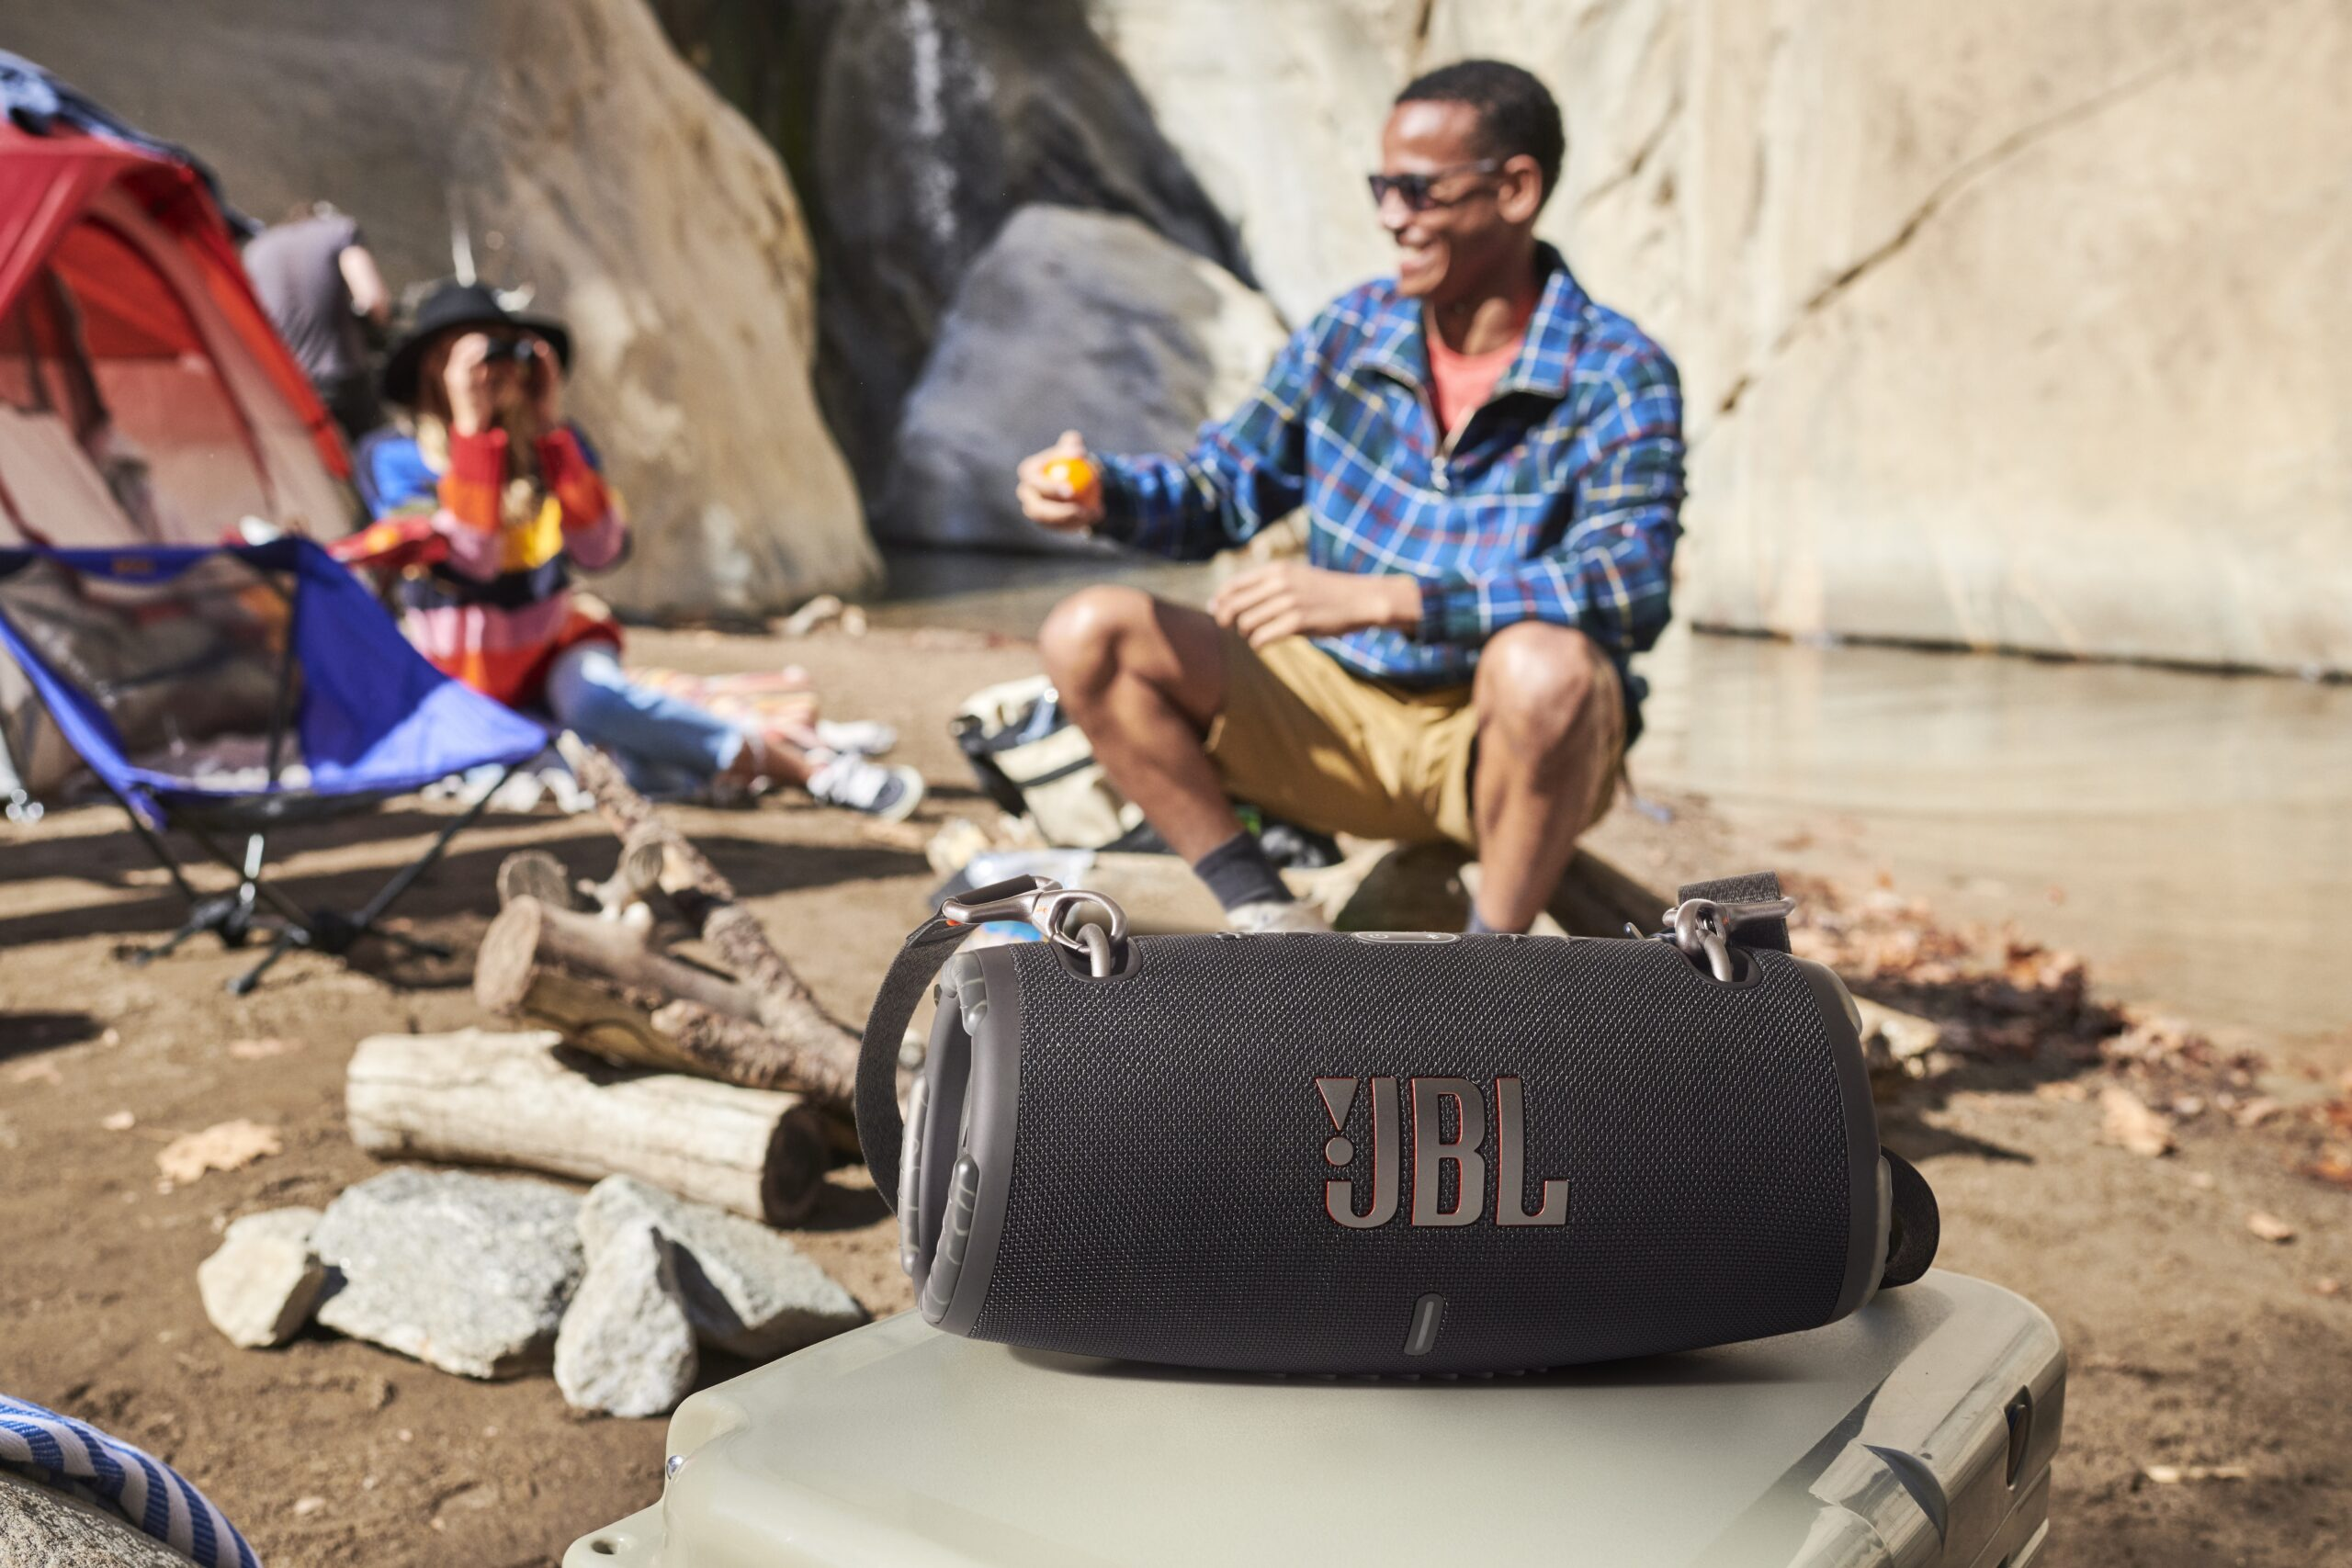 Man and woman at campground, JBL speaker in forgeround